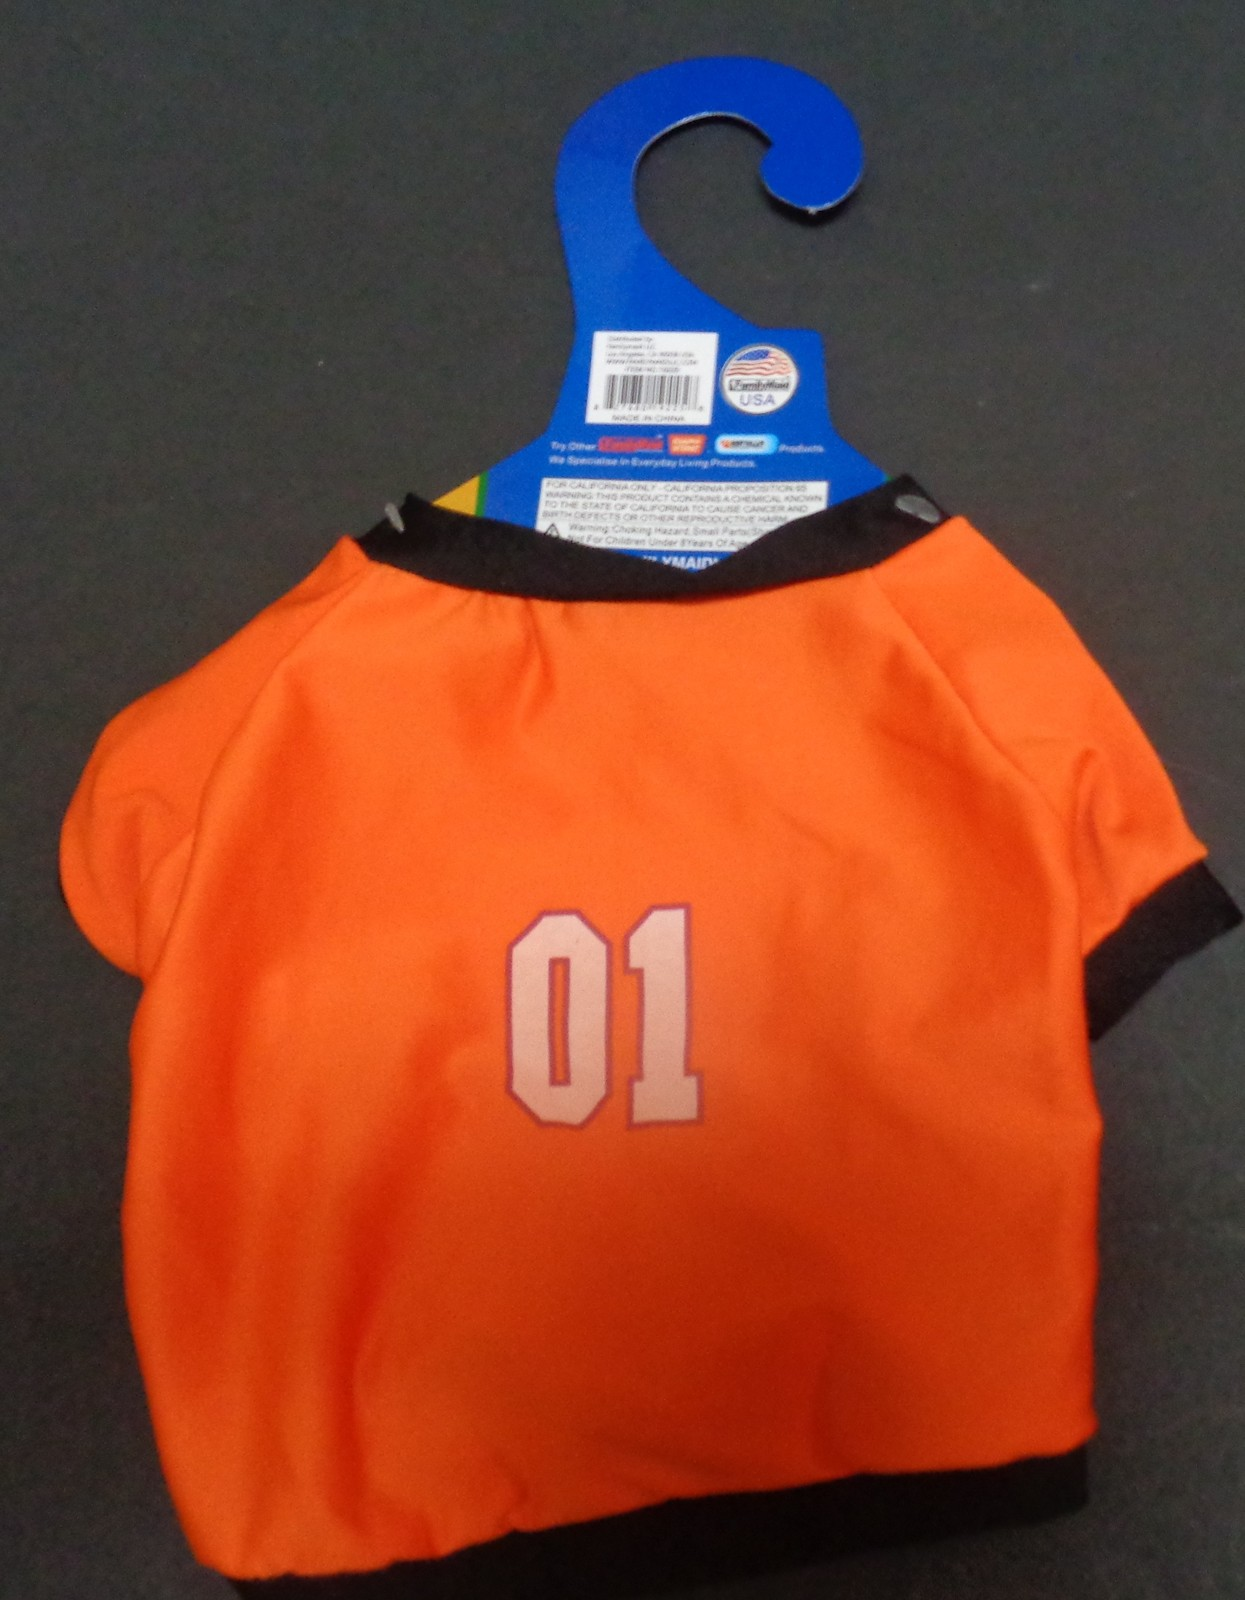 Neon Orange Doggy Shirt NWT Small Dog Number One Free Shipping